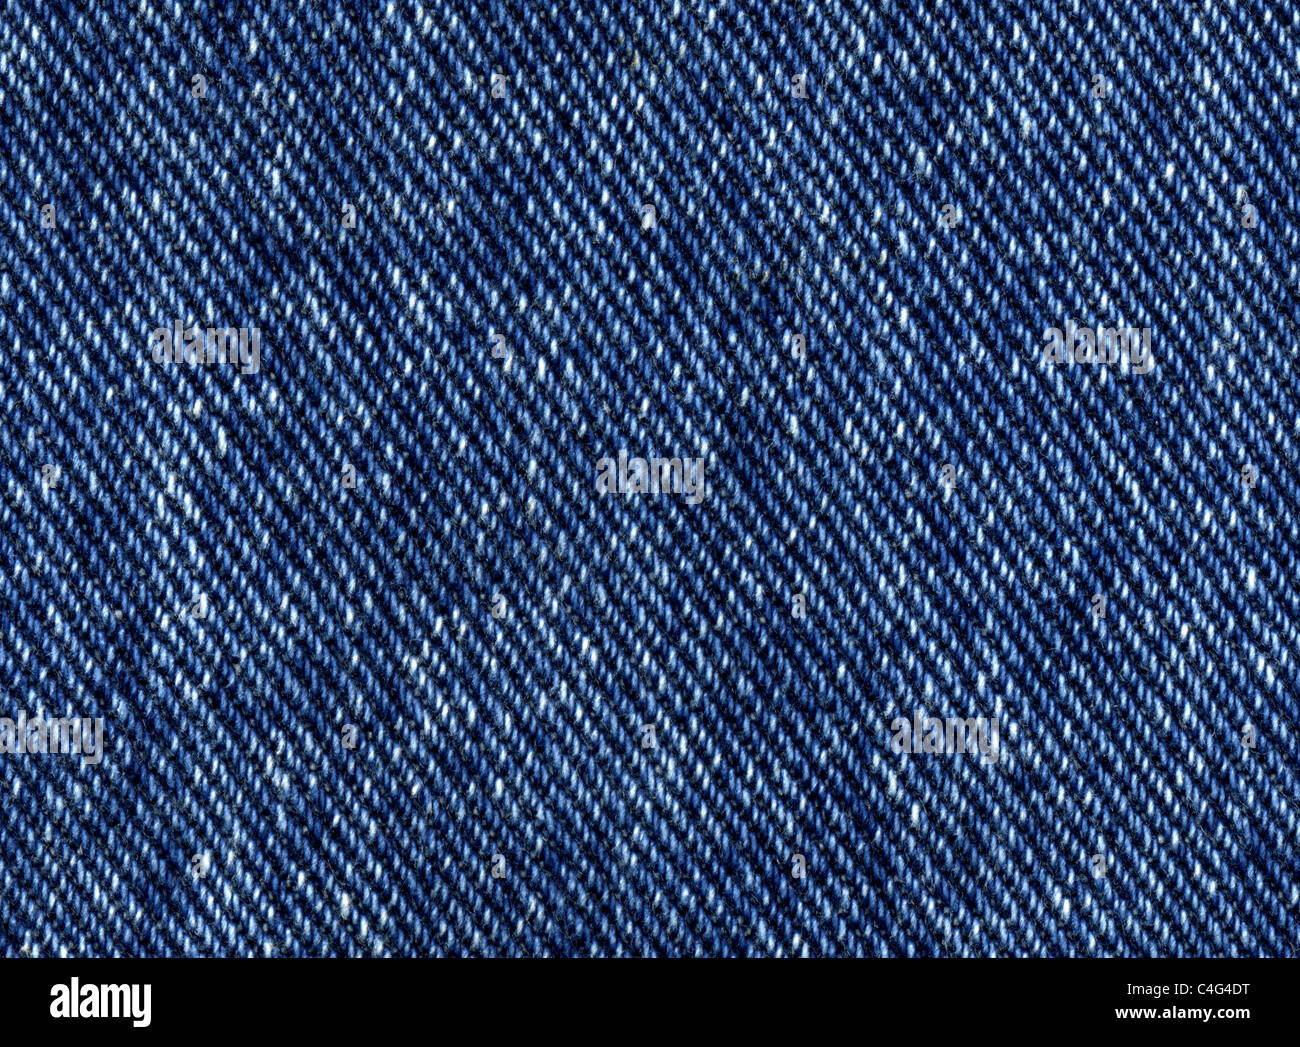 Dark blue denim jeans close up texture background - Stock Image